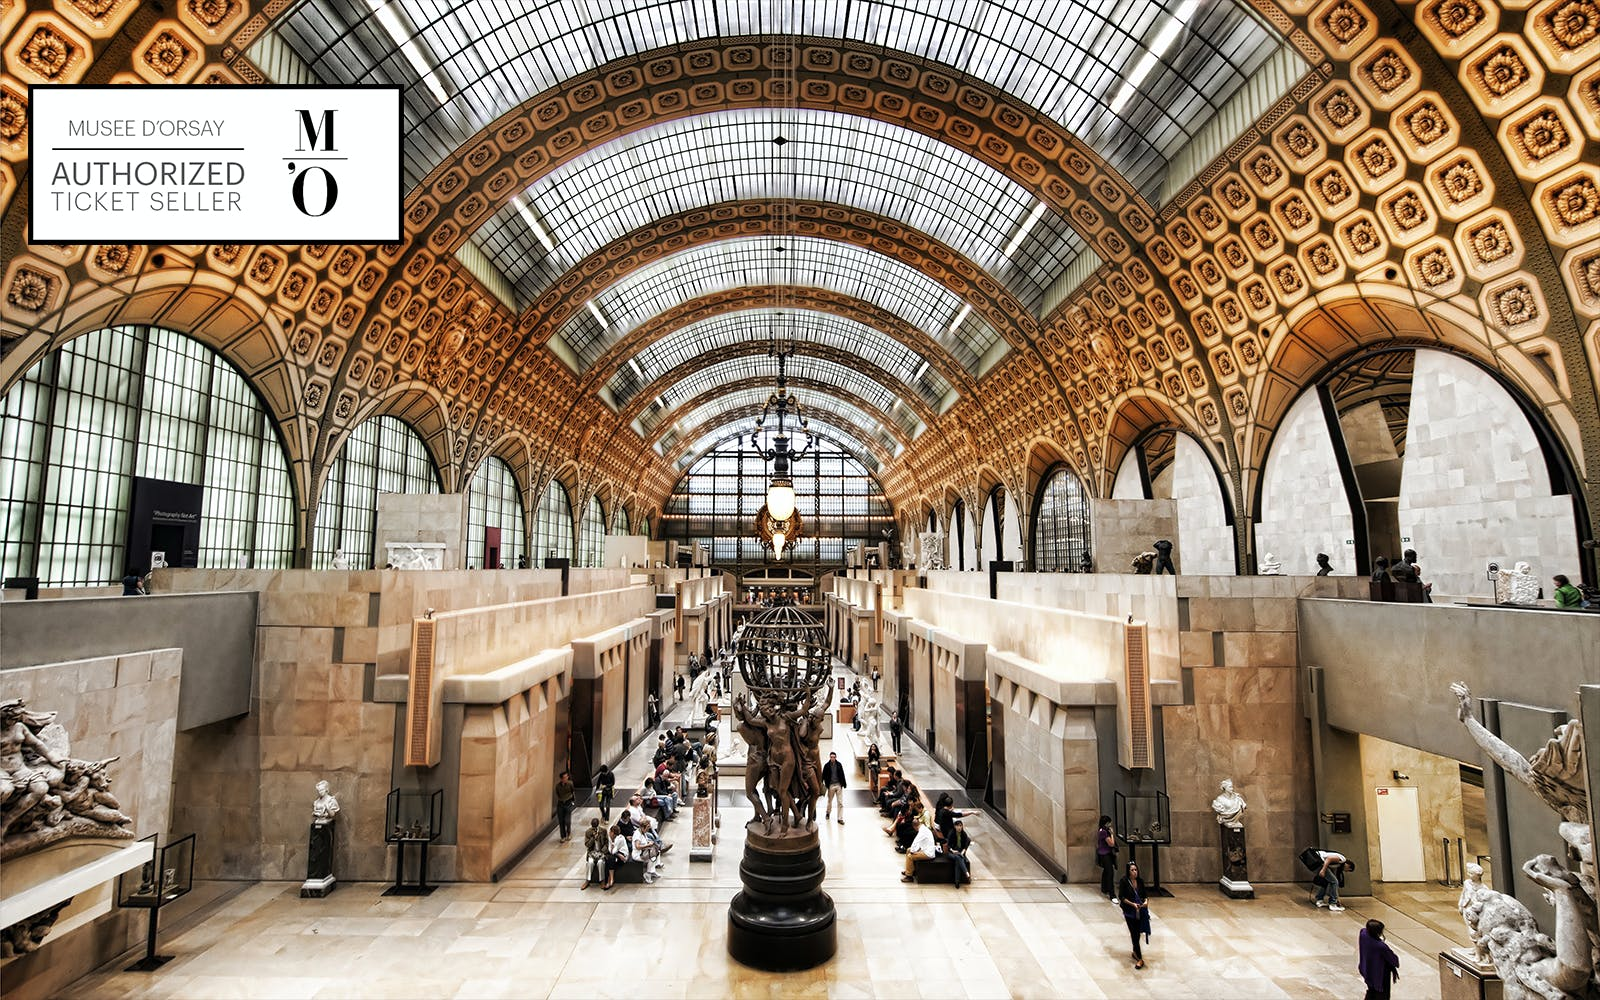 Skip The Line Tickets to Orsay Museum